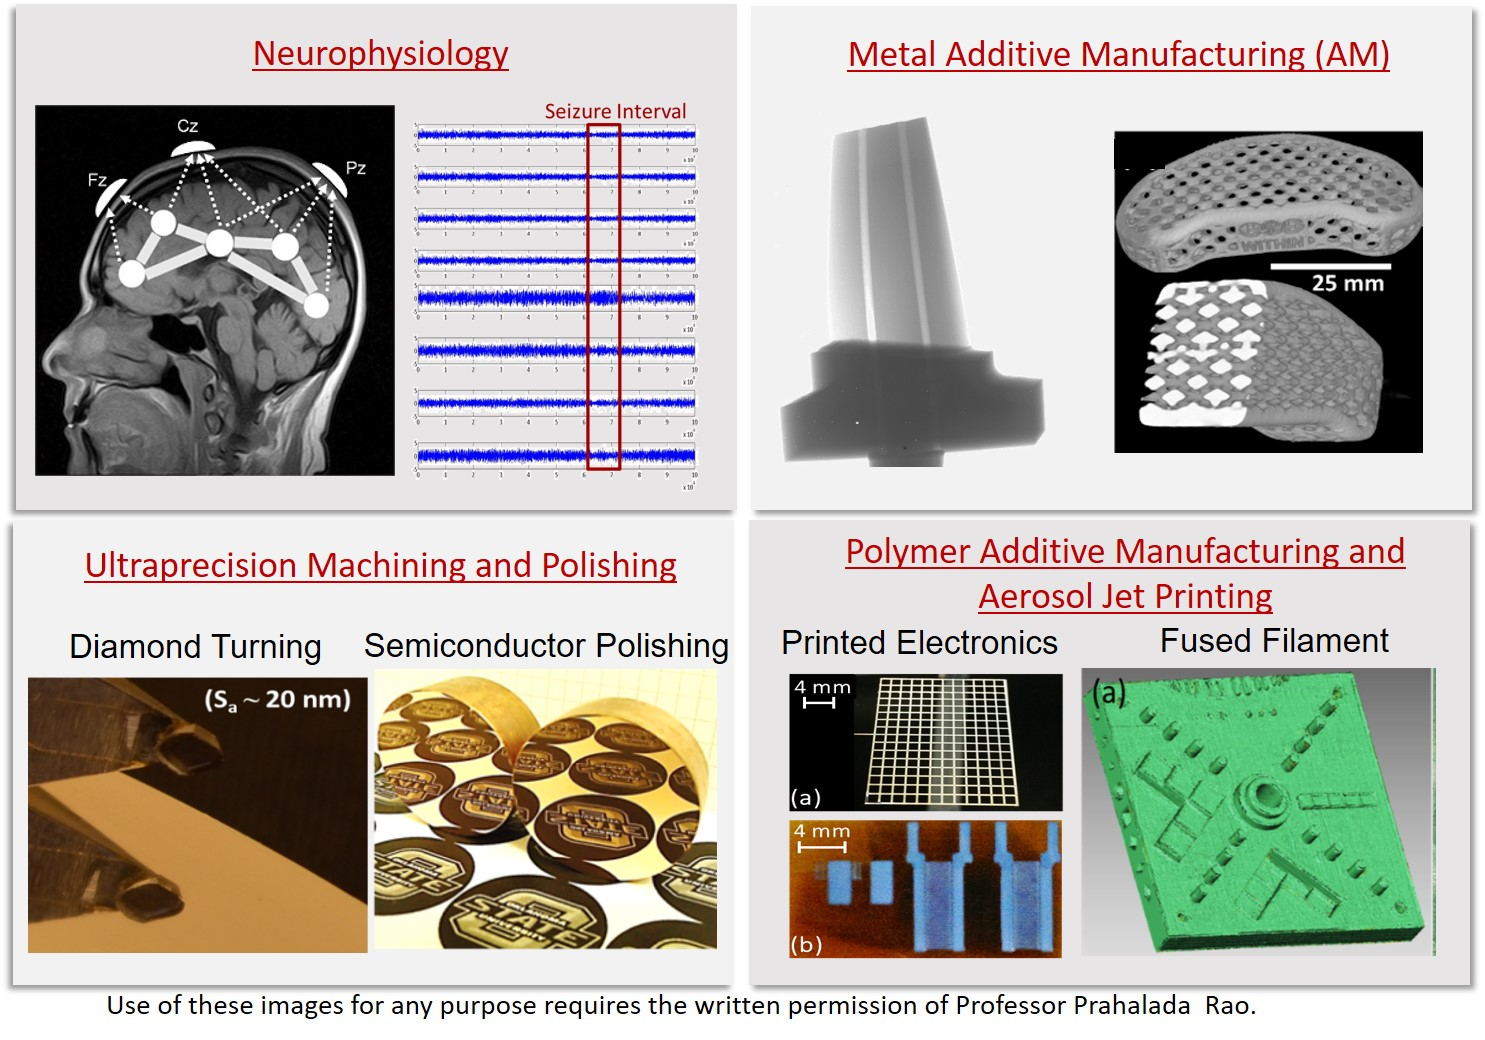 Quadrant: Neurophysiology (top left), Metal Additive Manufacturing (top right), Ultraprecision Machining and Polishing (bottom left), Polymer Additive Manufacturing and Aerosol Jet Printing (bottom right).